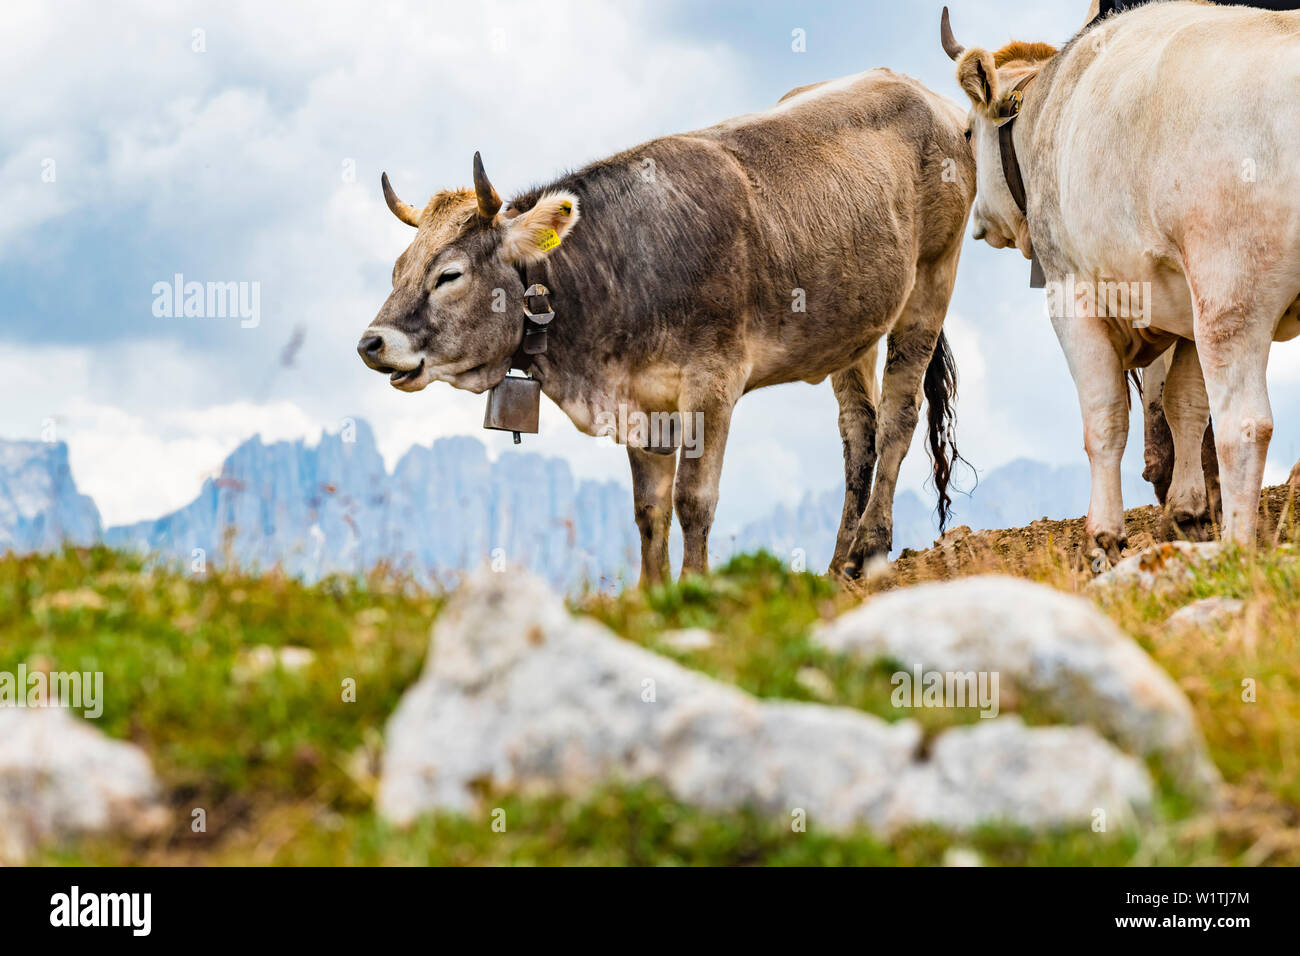 Cows on the plateau, Compatsch, Seiser Alm, South Tyrol, Italy - Stock Image